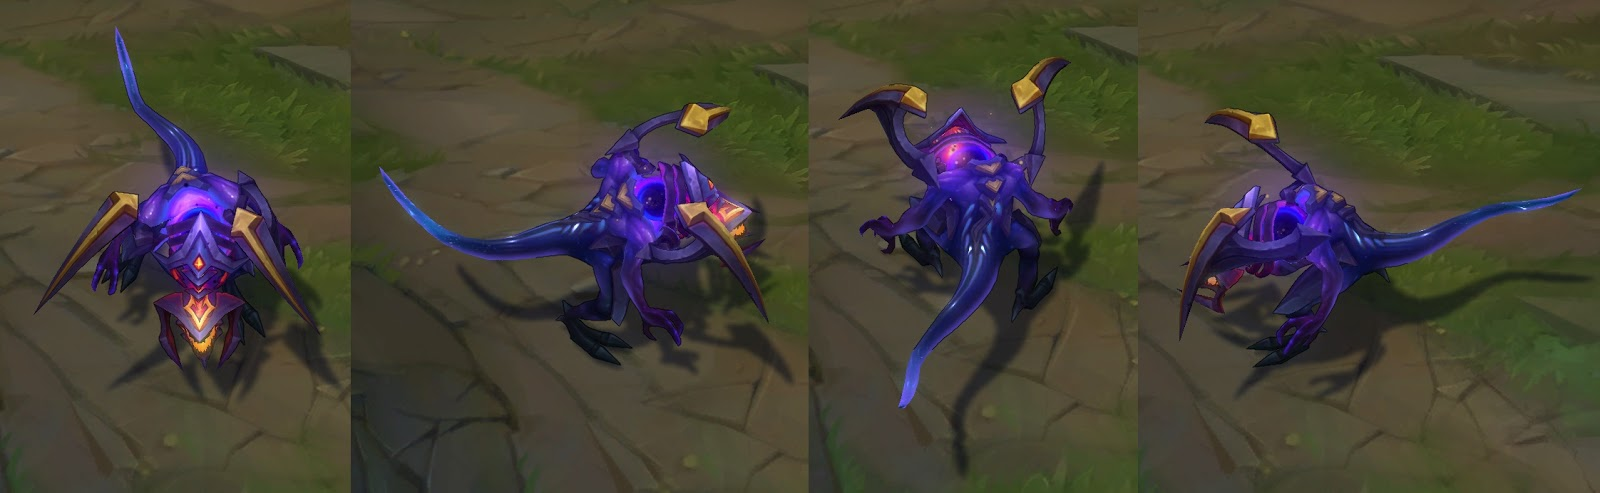 dark star chogath skin for league of legends ingame picture